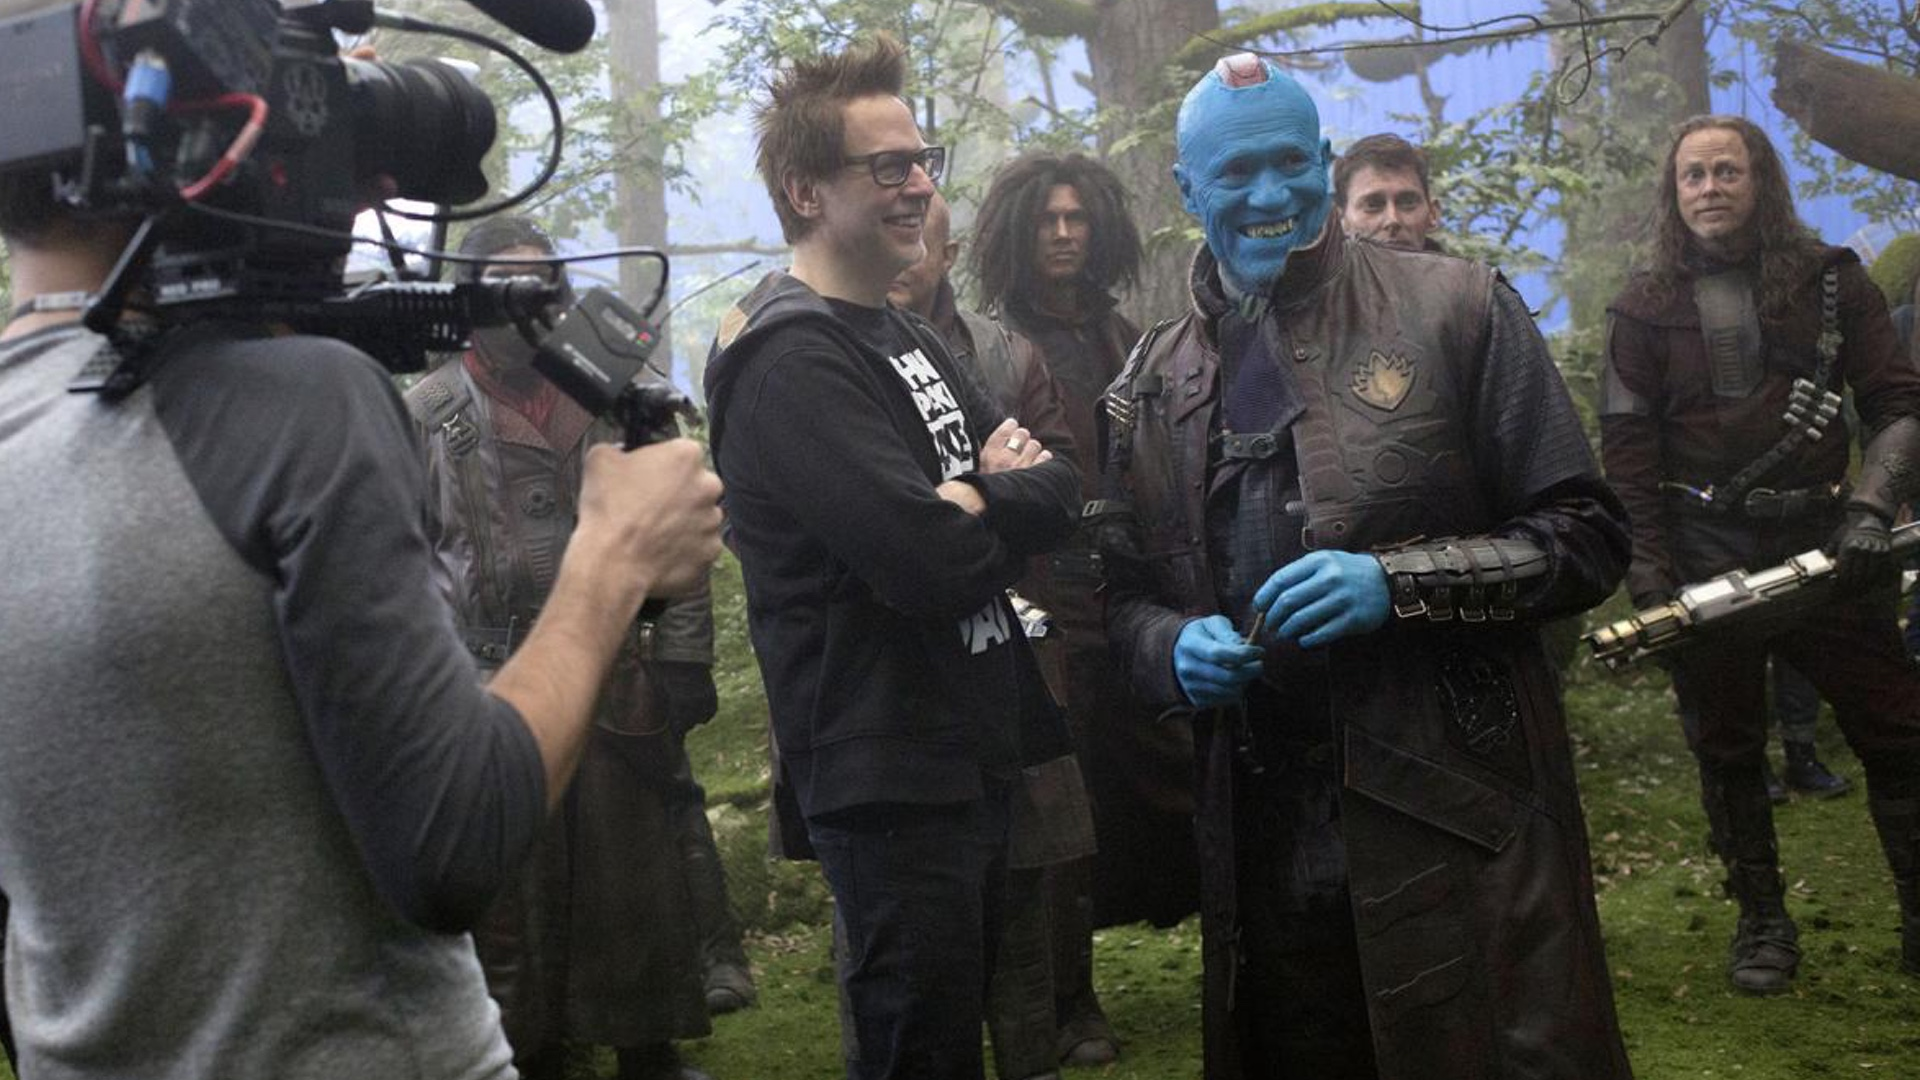 disney-is-reportedly-considering-reinstating-james-gunn-as-the-director-of-guardians-of-the-galaxy-vol-3-social.jpg